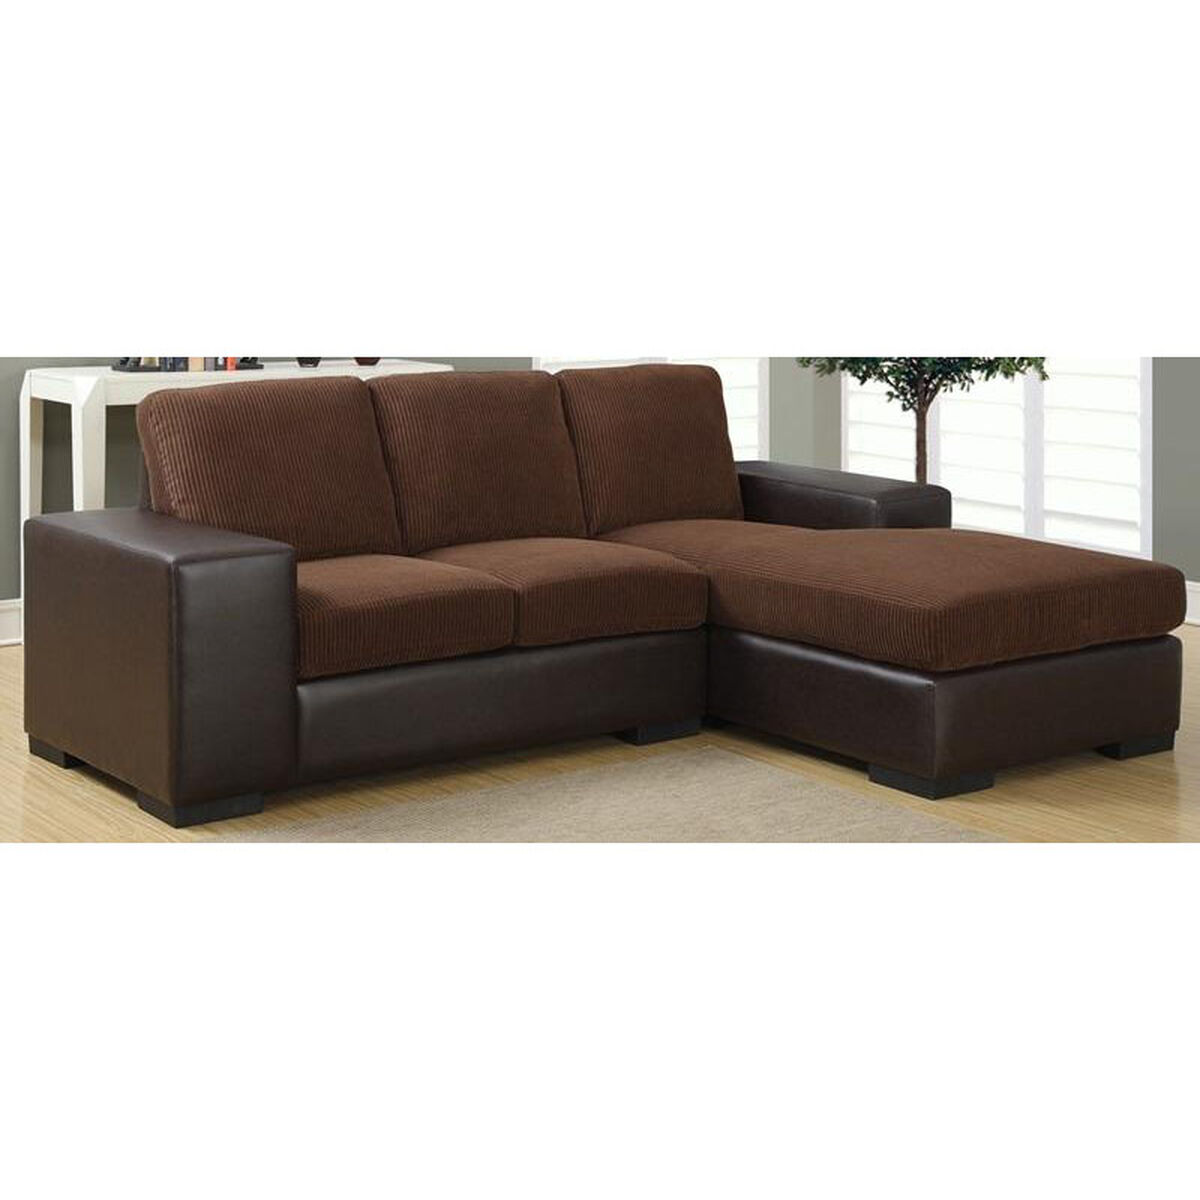 Two Tone Mixed Upholstery Sofa I 8200bb Bizchair Com